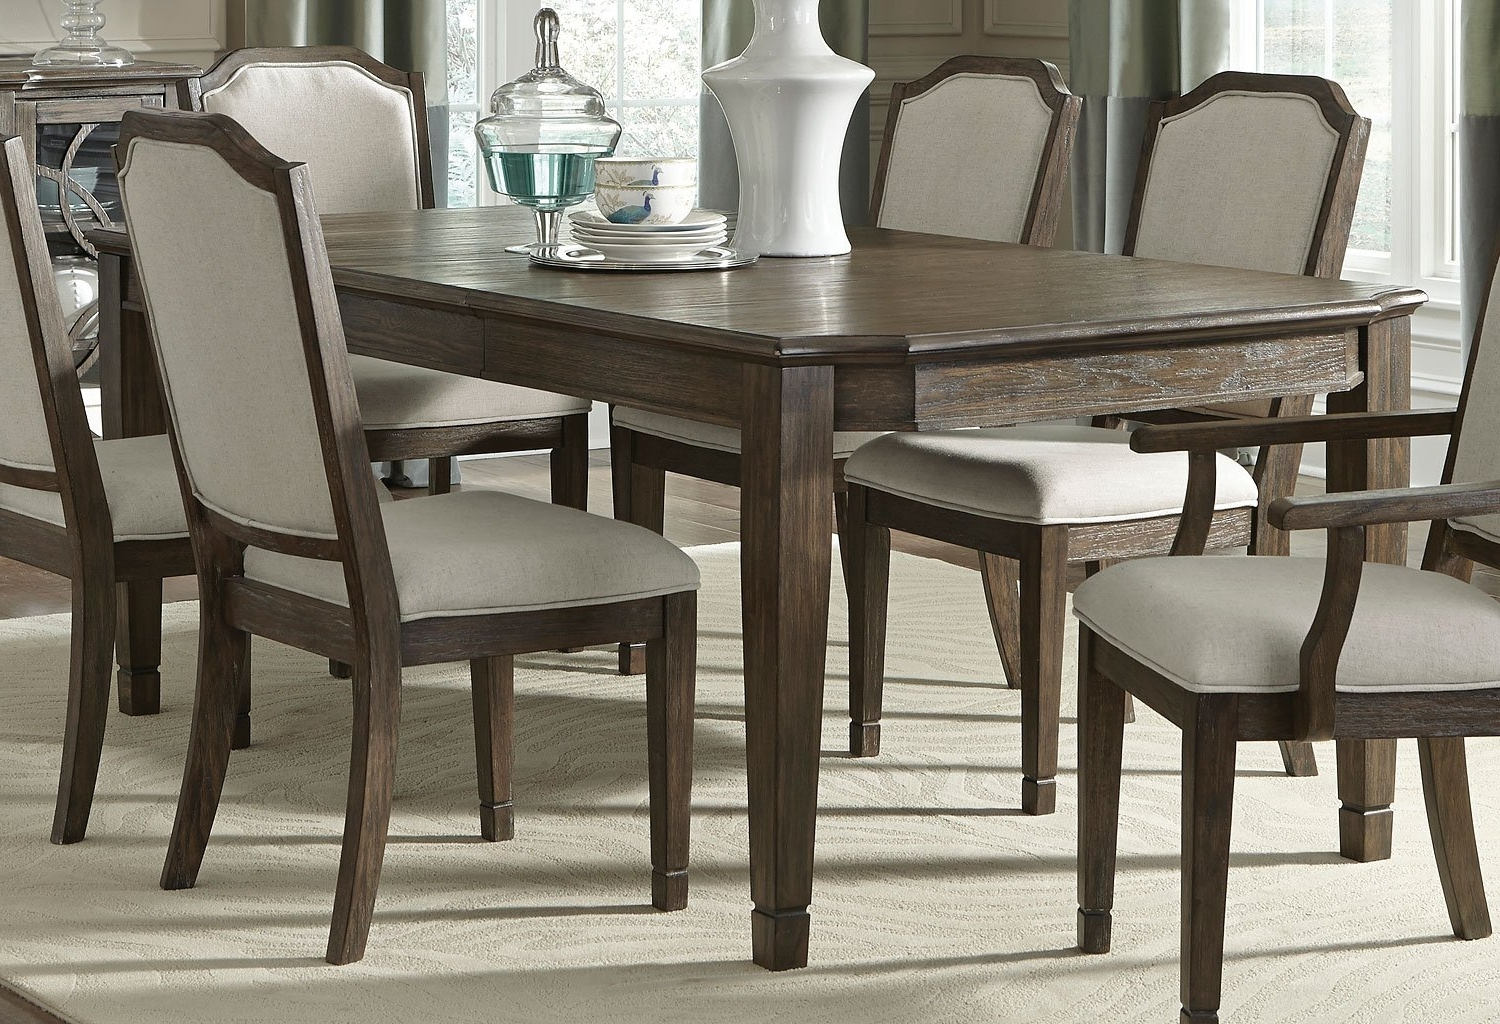 Hamilton Dining Tables In Most Recent Hamilton Dining Table Samuel Lawrence Furniture (View 7 of 25)